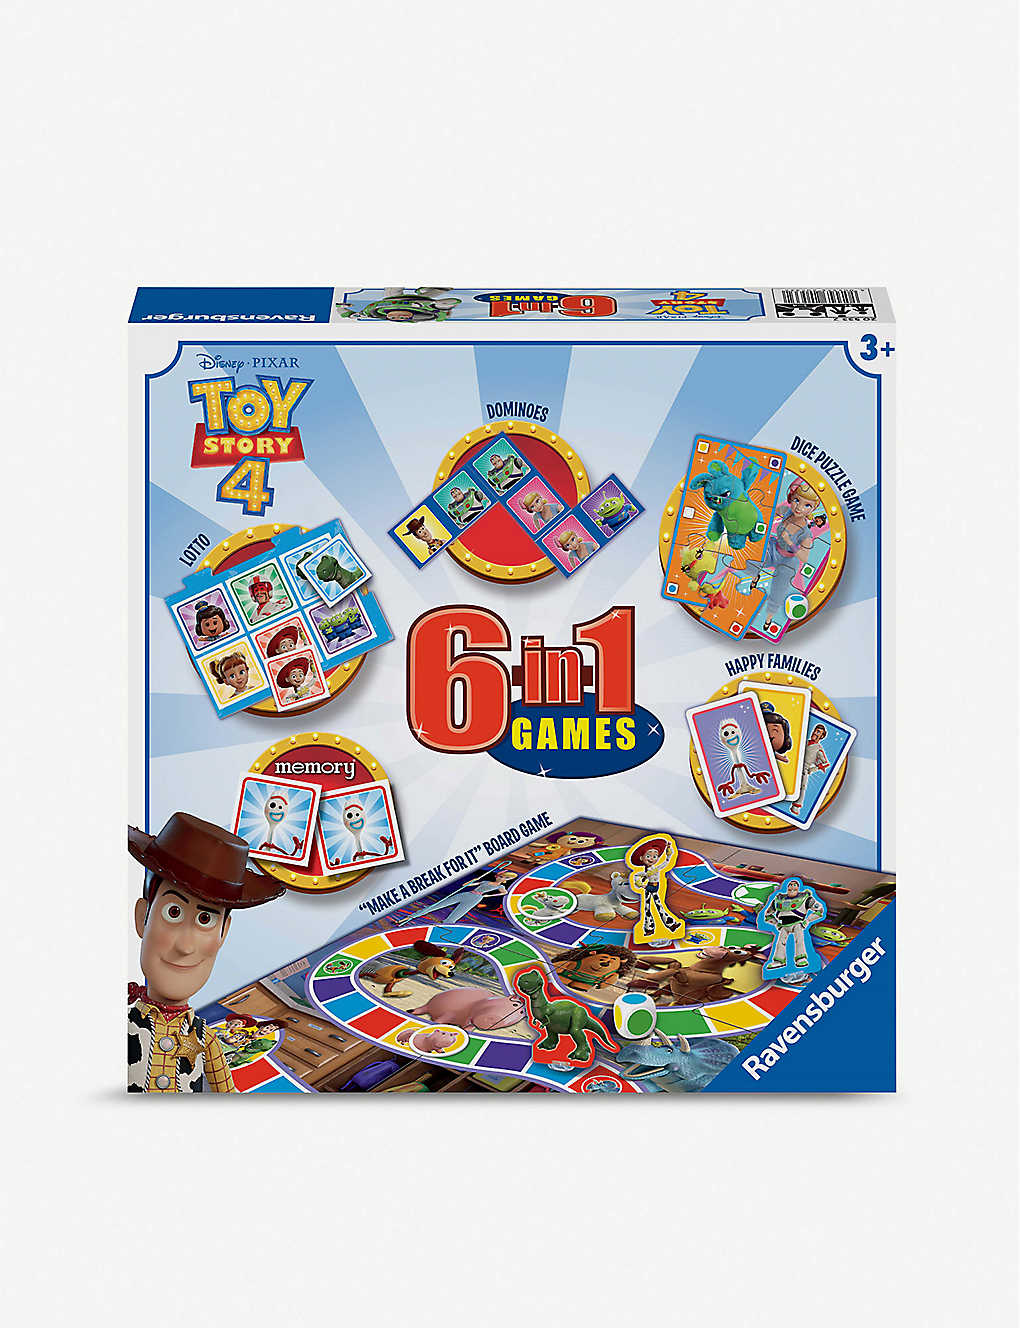 TOY STORY: Disney Toy Story 4 6-in-1 games box